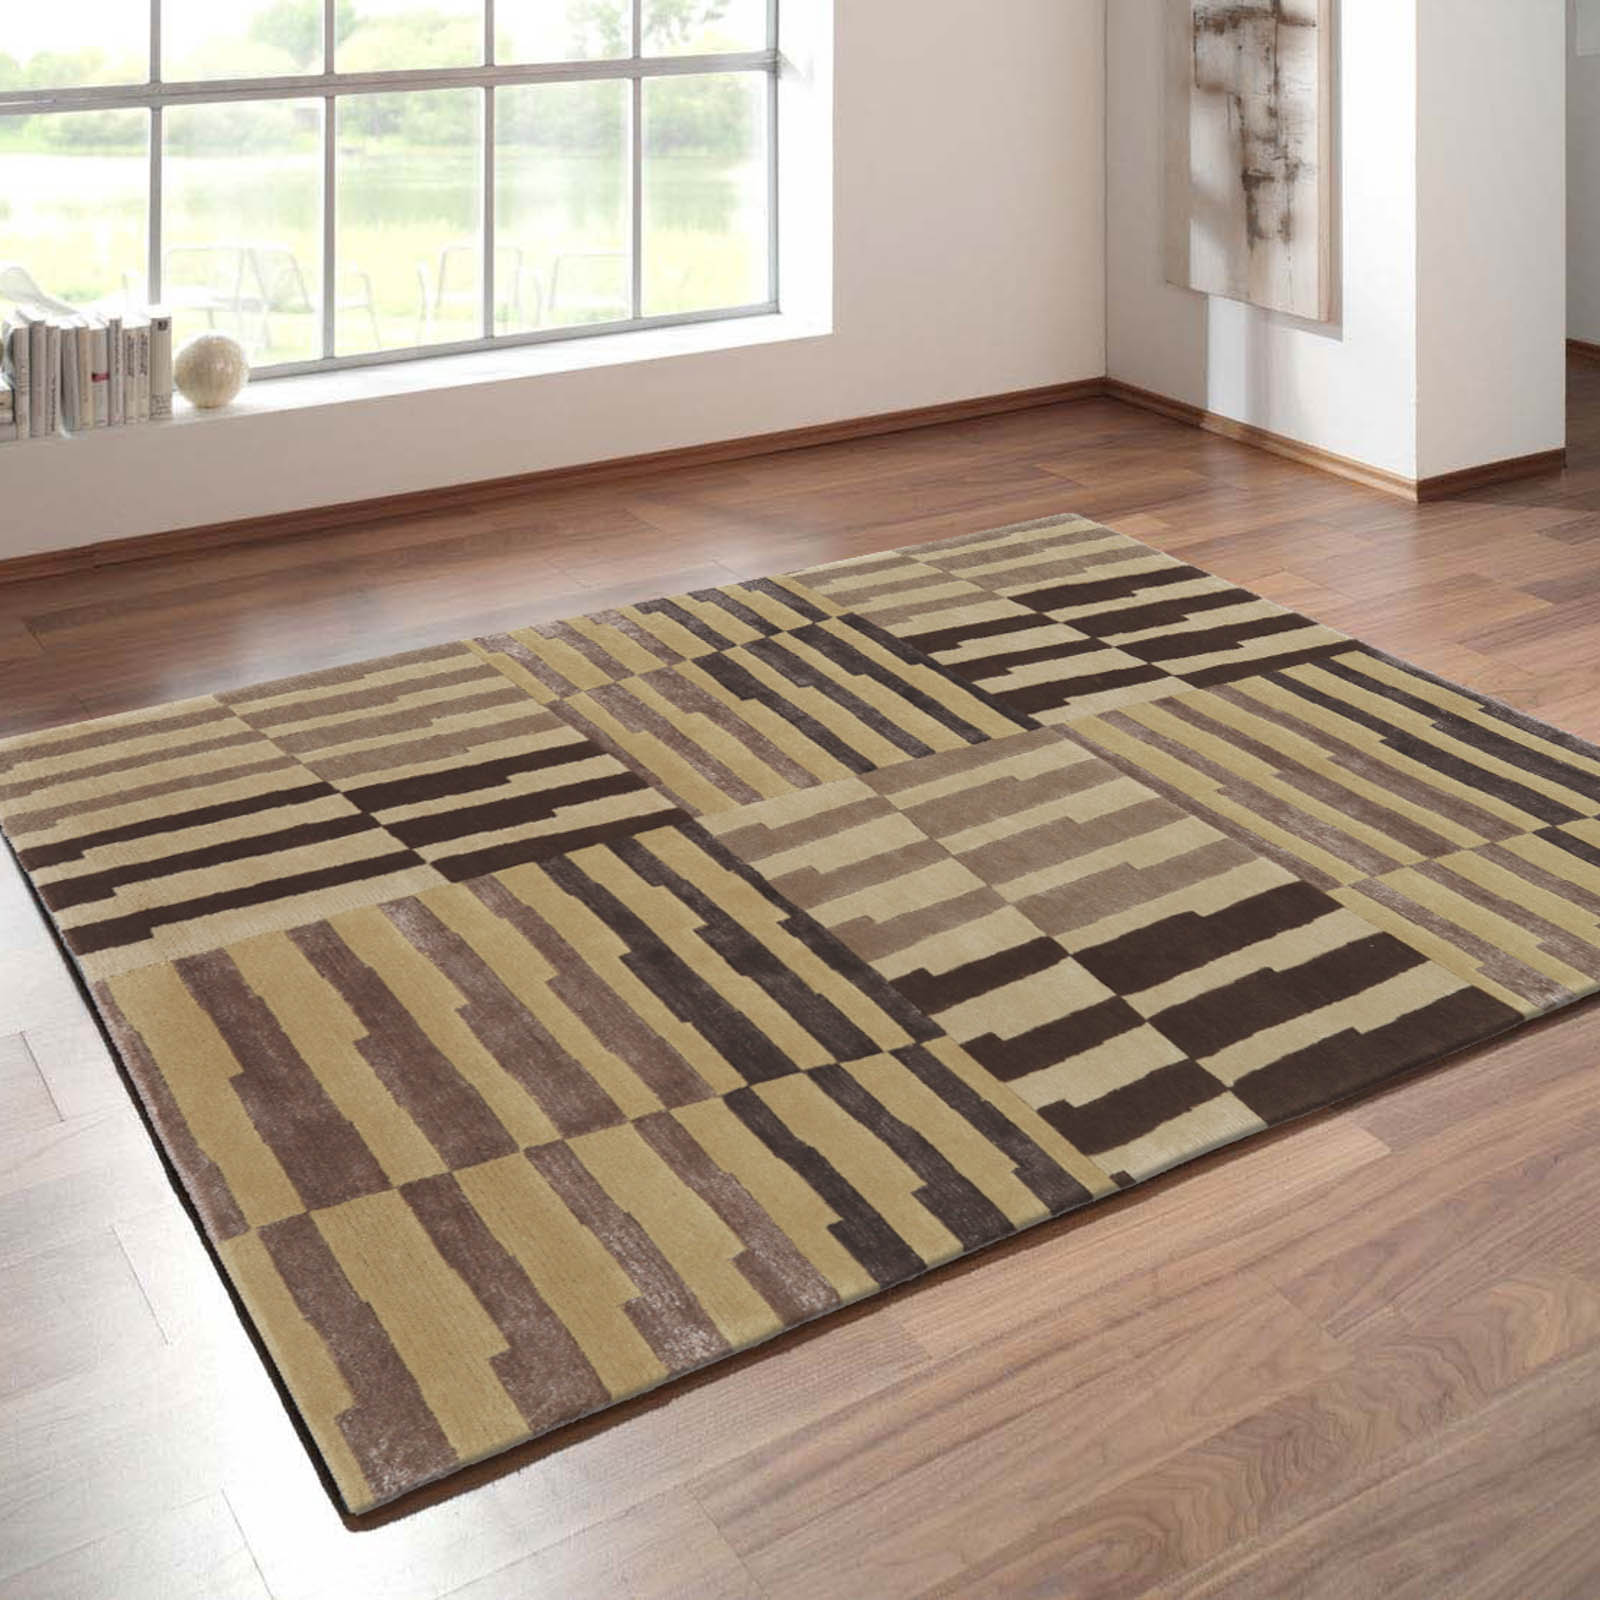 Symphony Rugs 16317 in Beige and Brown